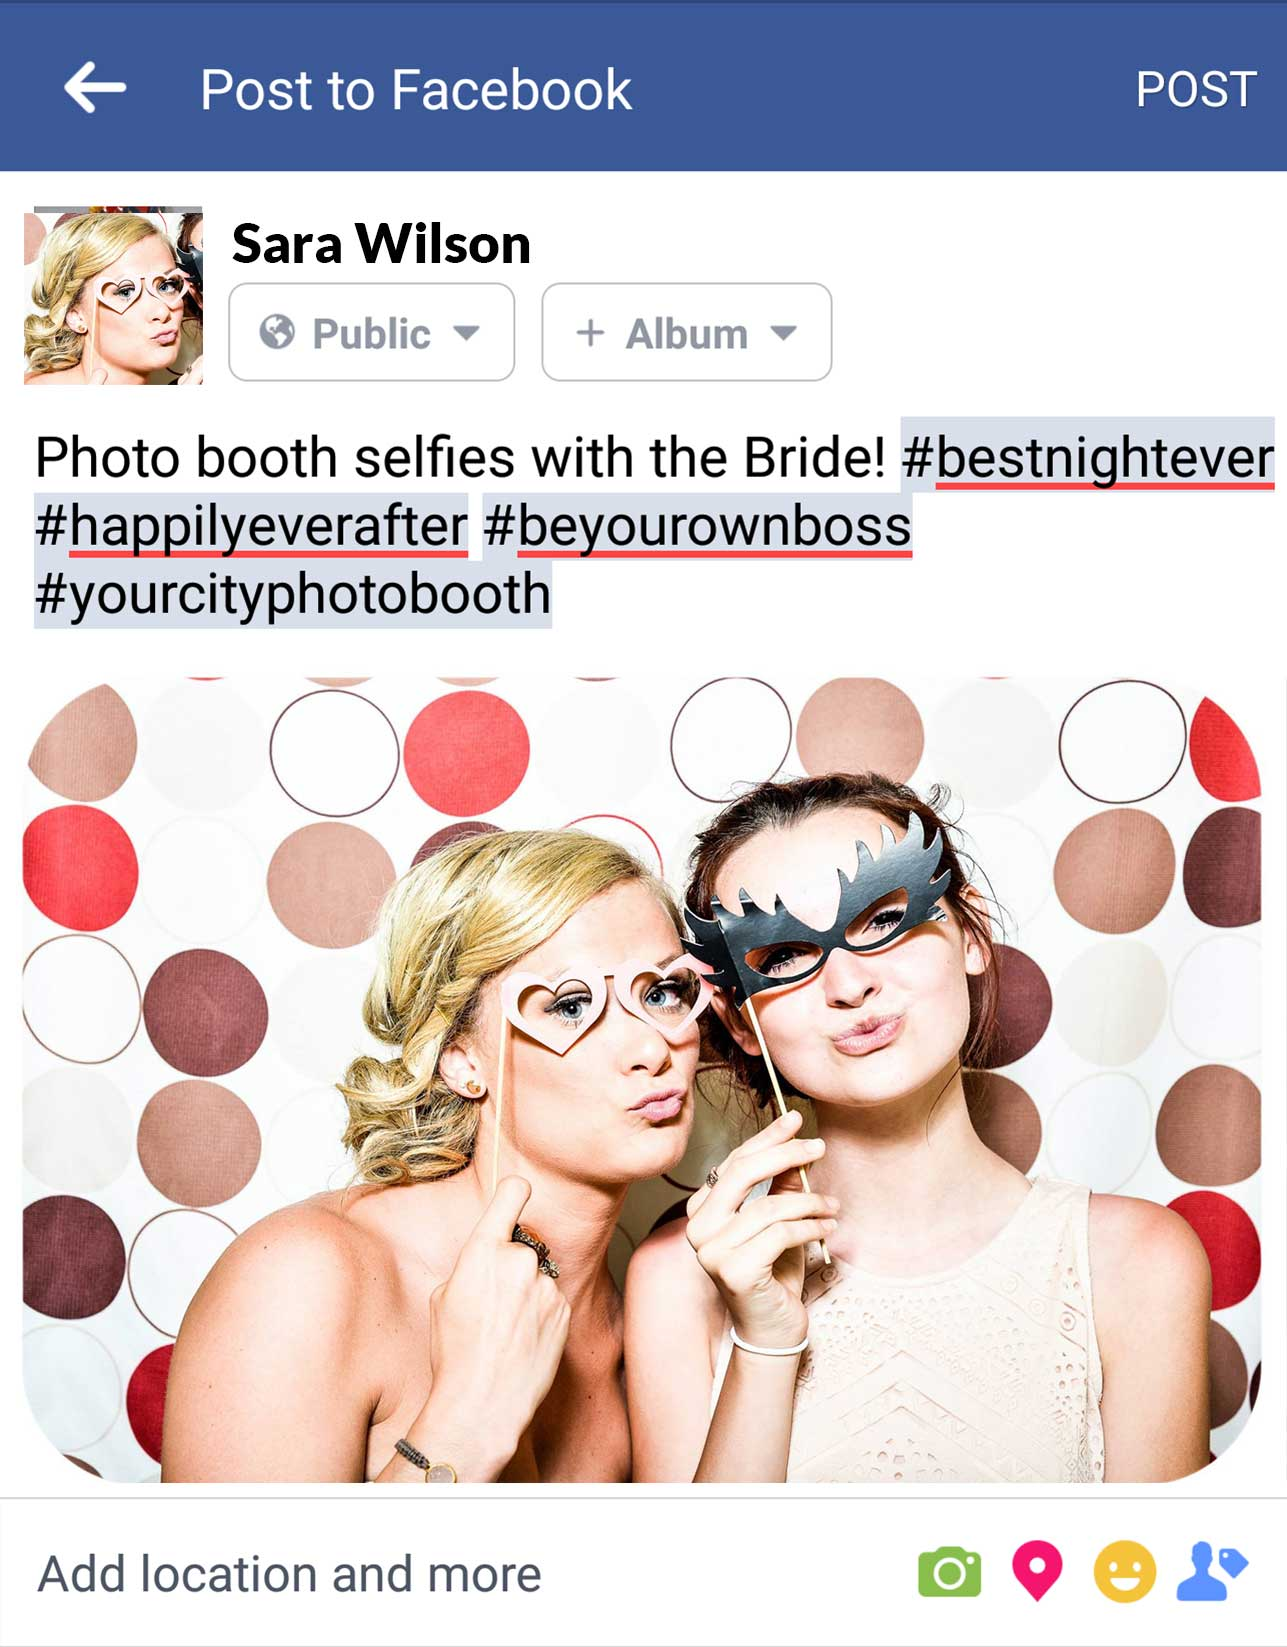 Selfies with the Bride - GIF Photo Booth for sale from Your City Photo Booth